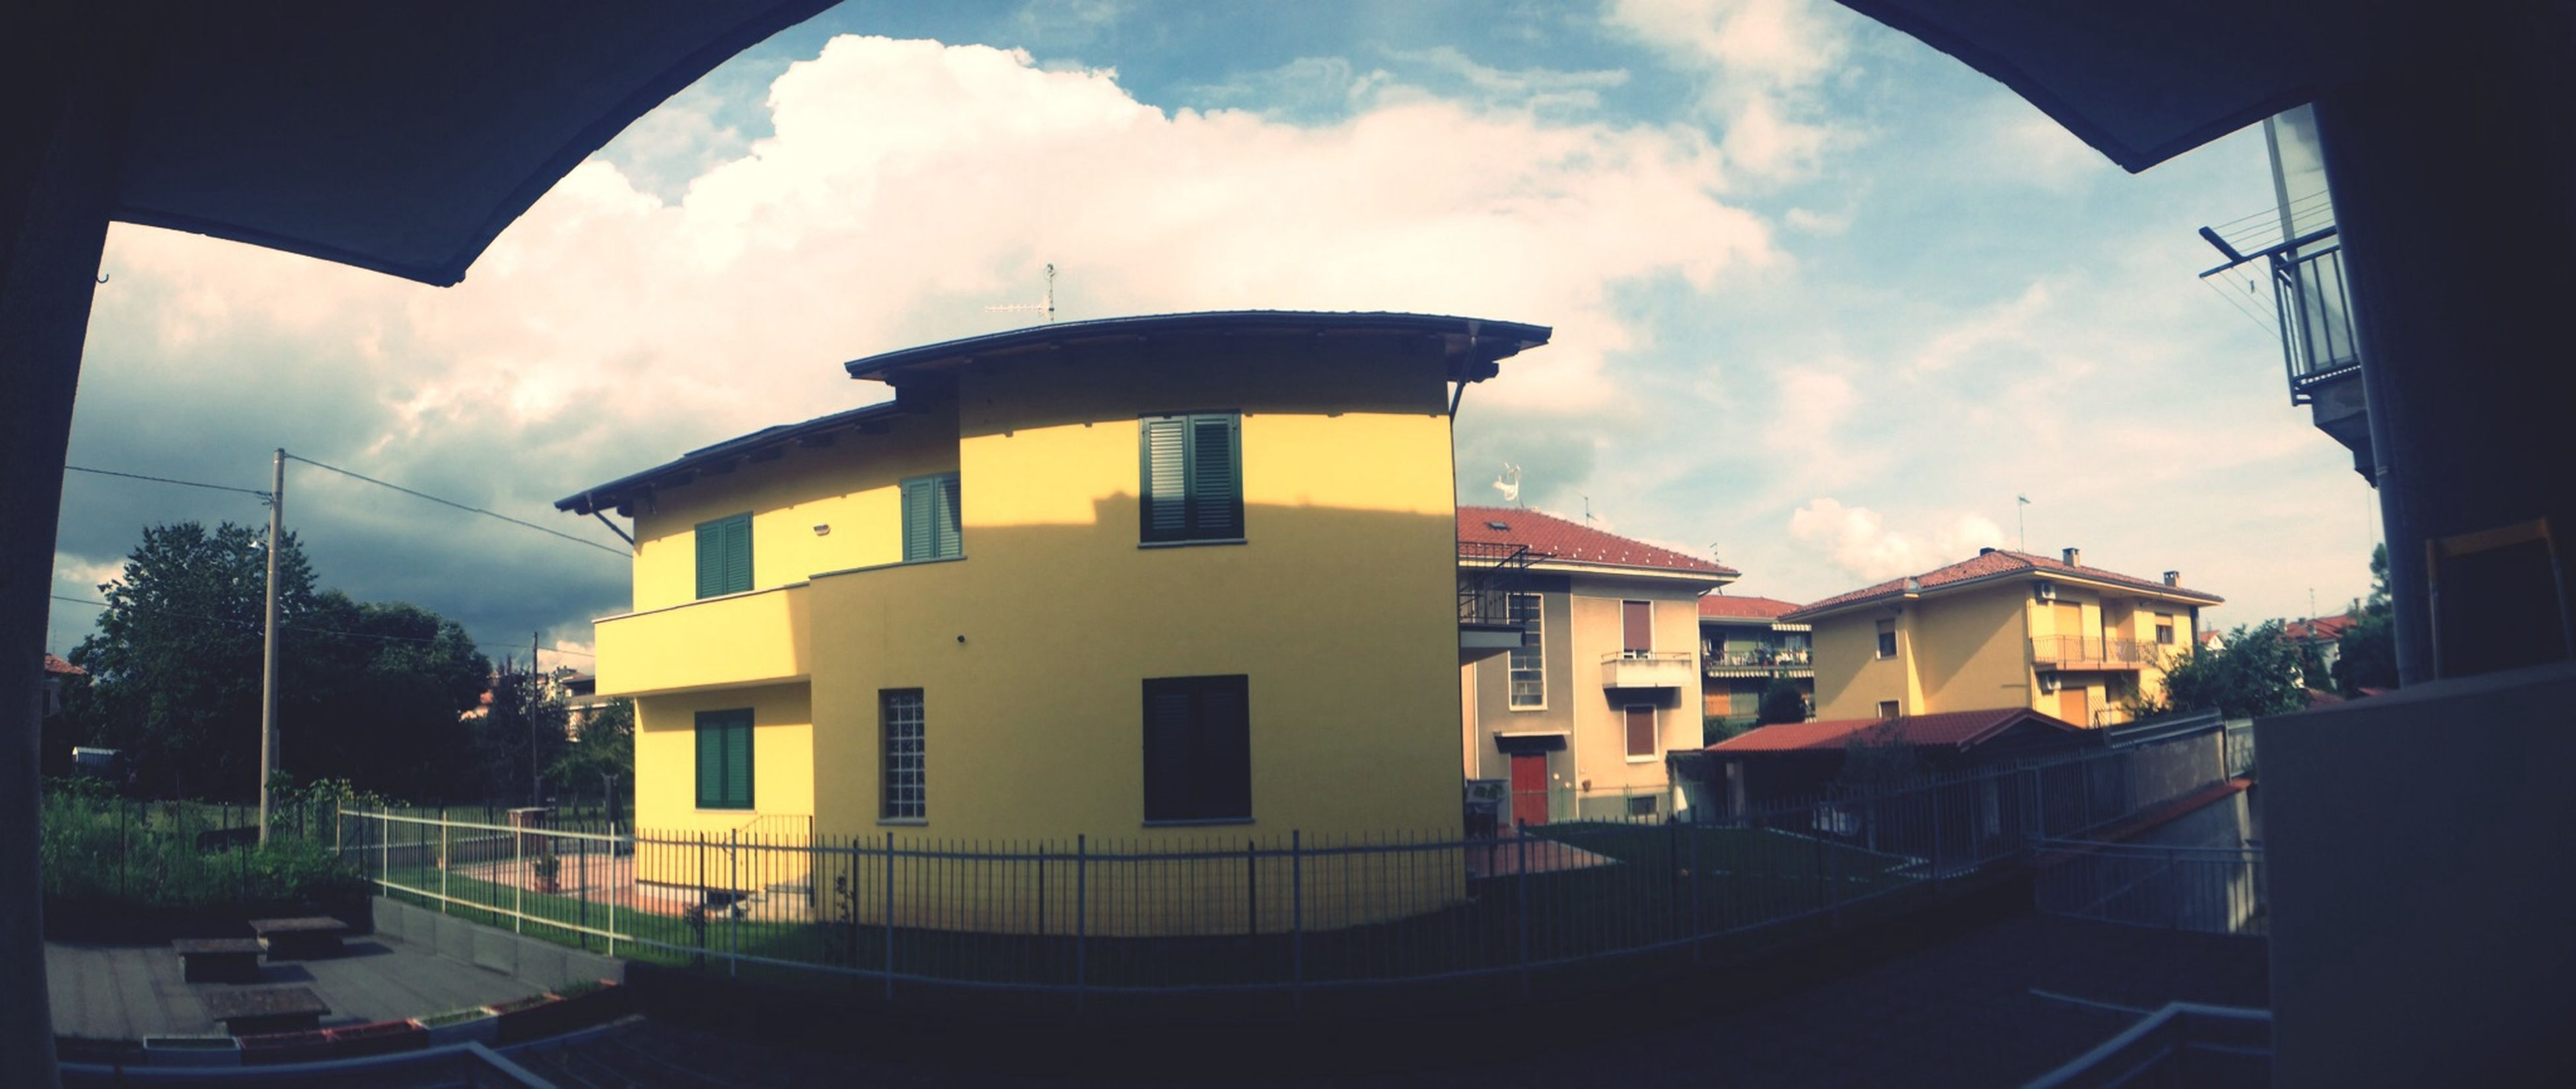 architecture, building exterior, built structure, sky, cloud - sky, house, residential structure, residential building, cloud, building, window, cloudy, transportation, city, outdoors, no people, low angle view, day, sunlight, auto post production filter